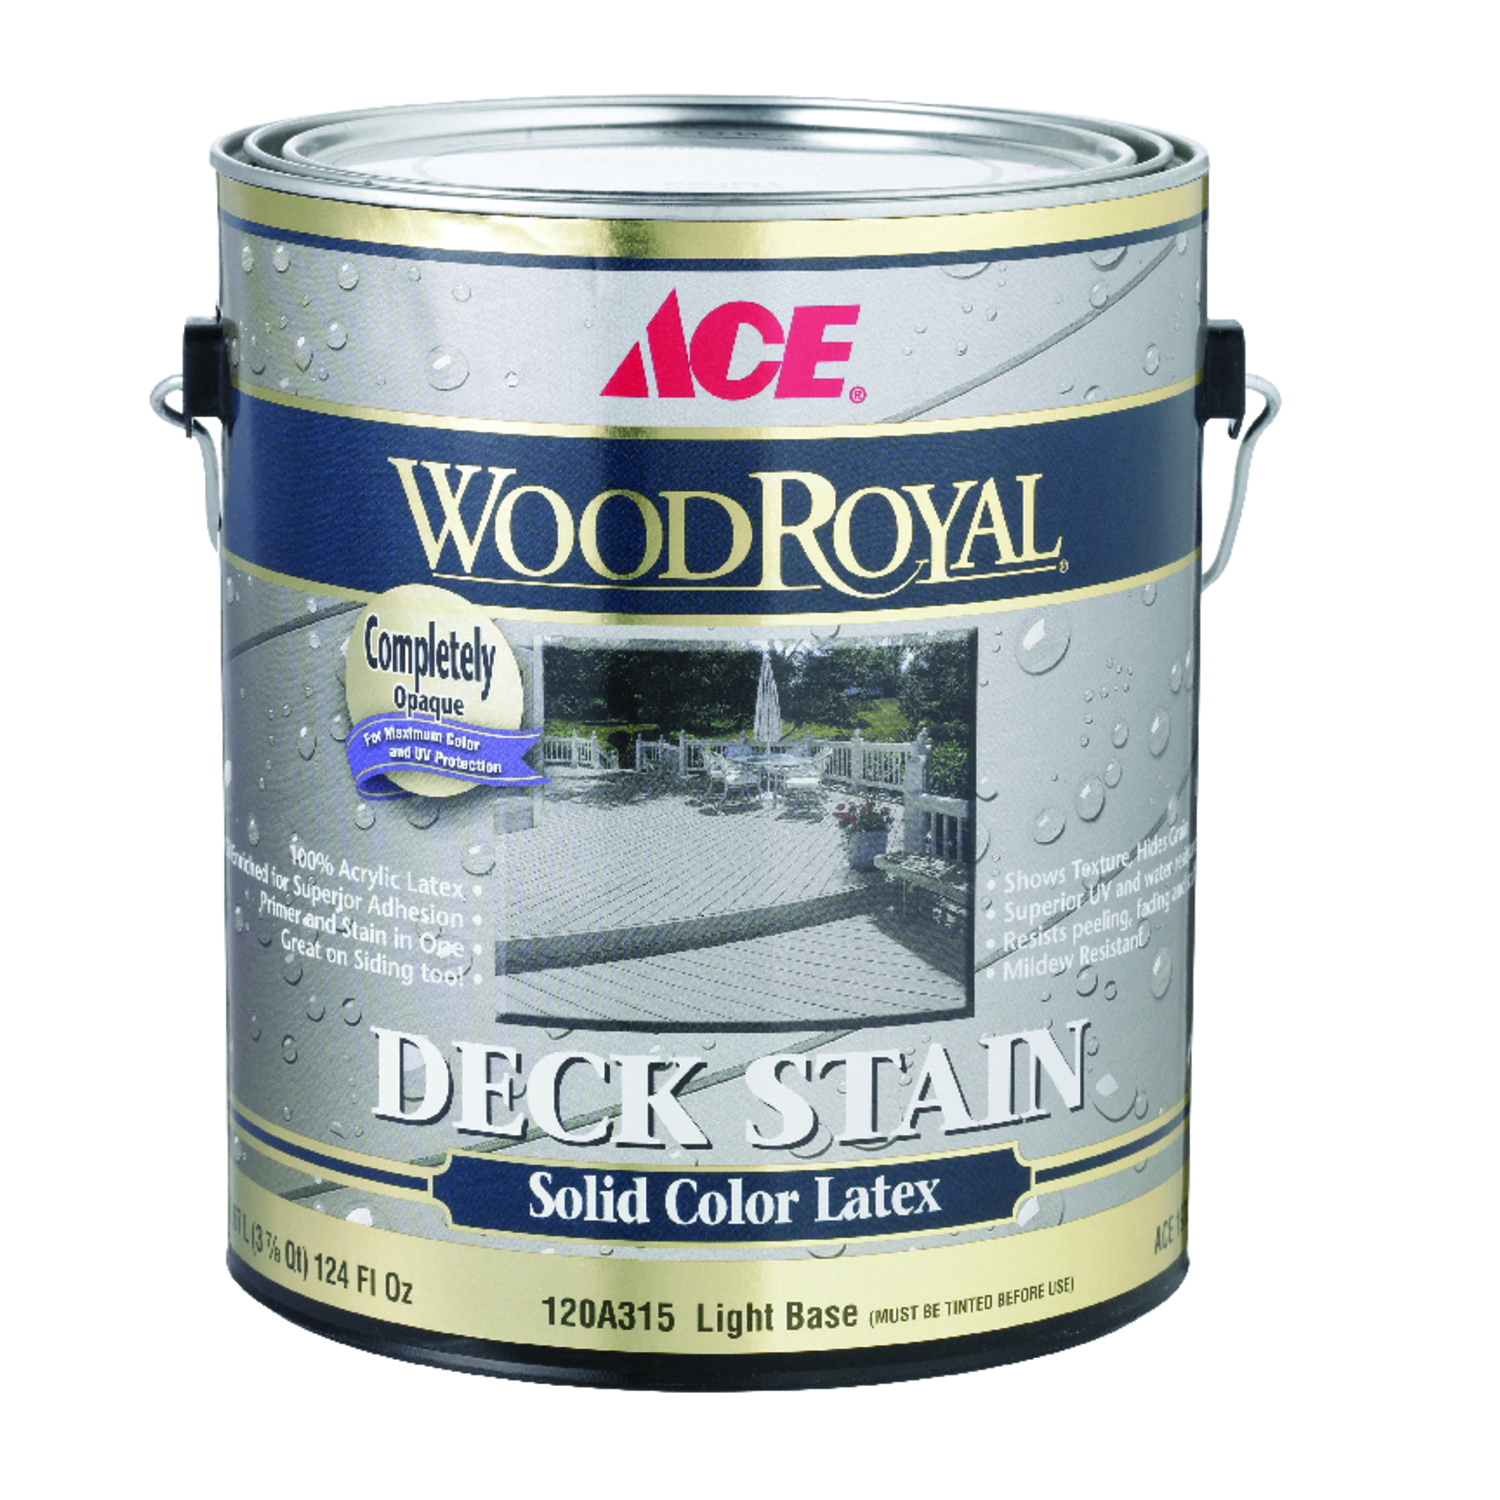 Ace  Wood Royal  Solid  Tintable Flat  Light Base  Light Base  Acrylic Latex  Deck and Siding Stain